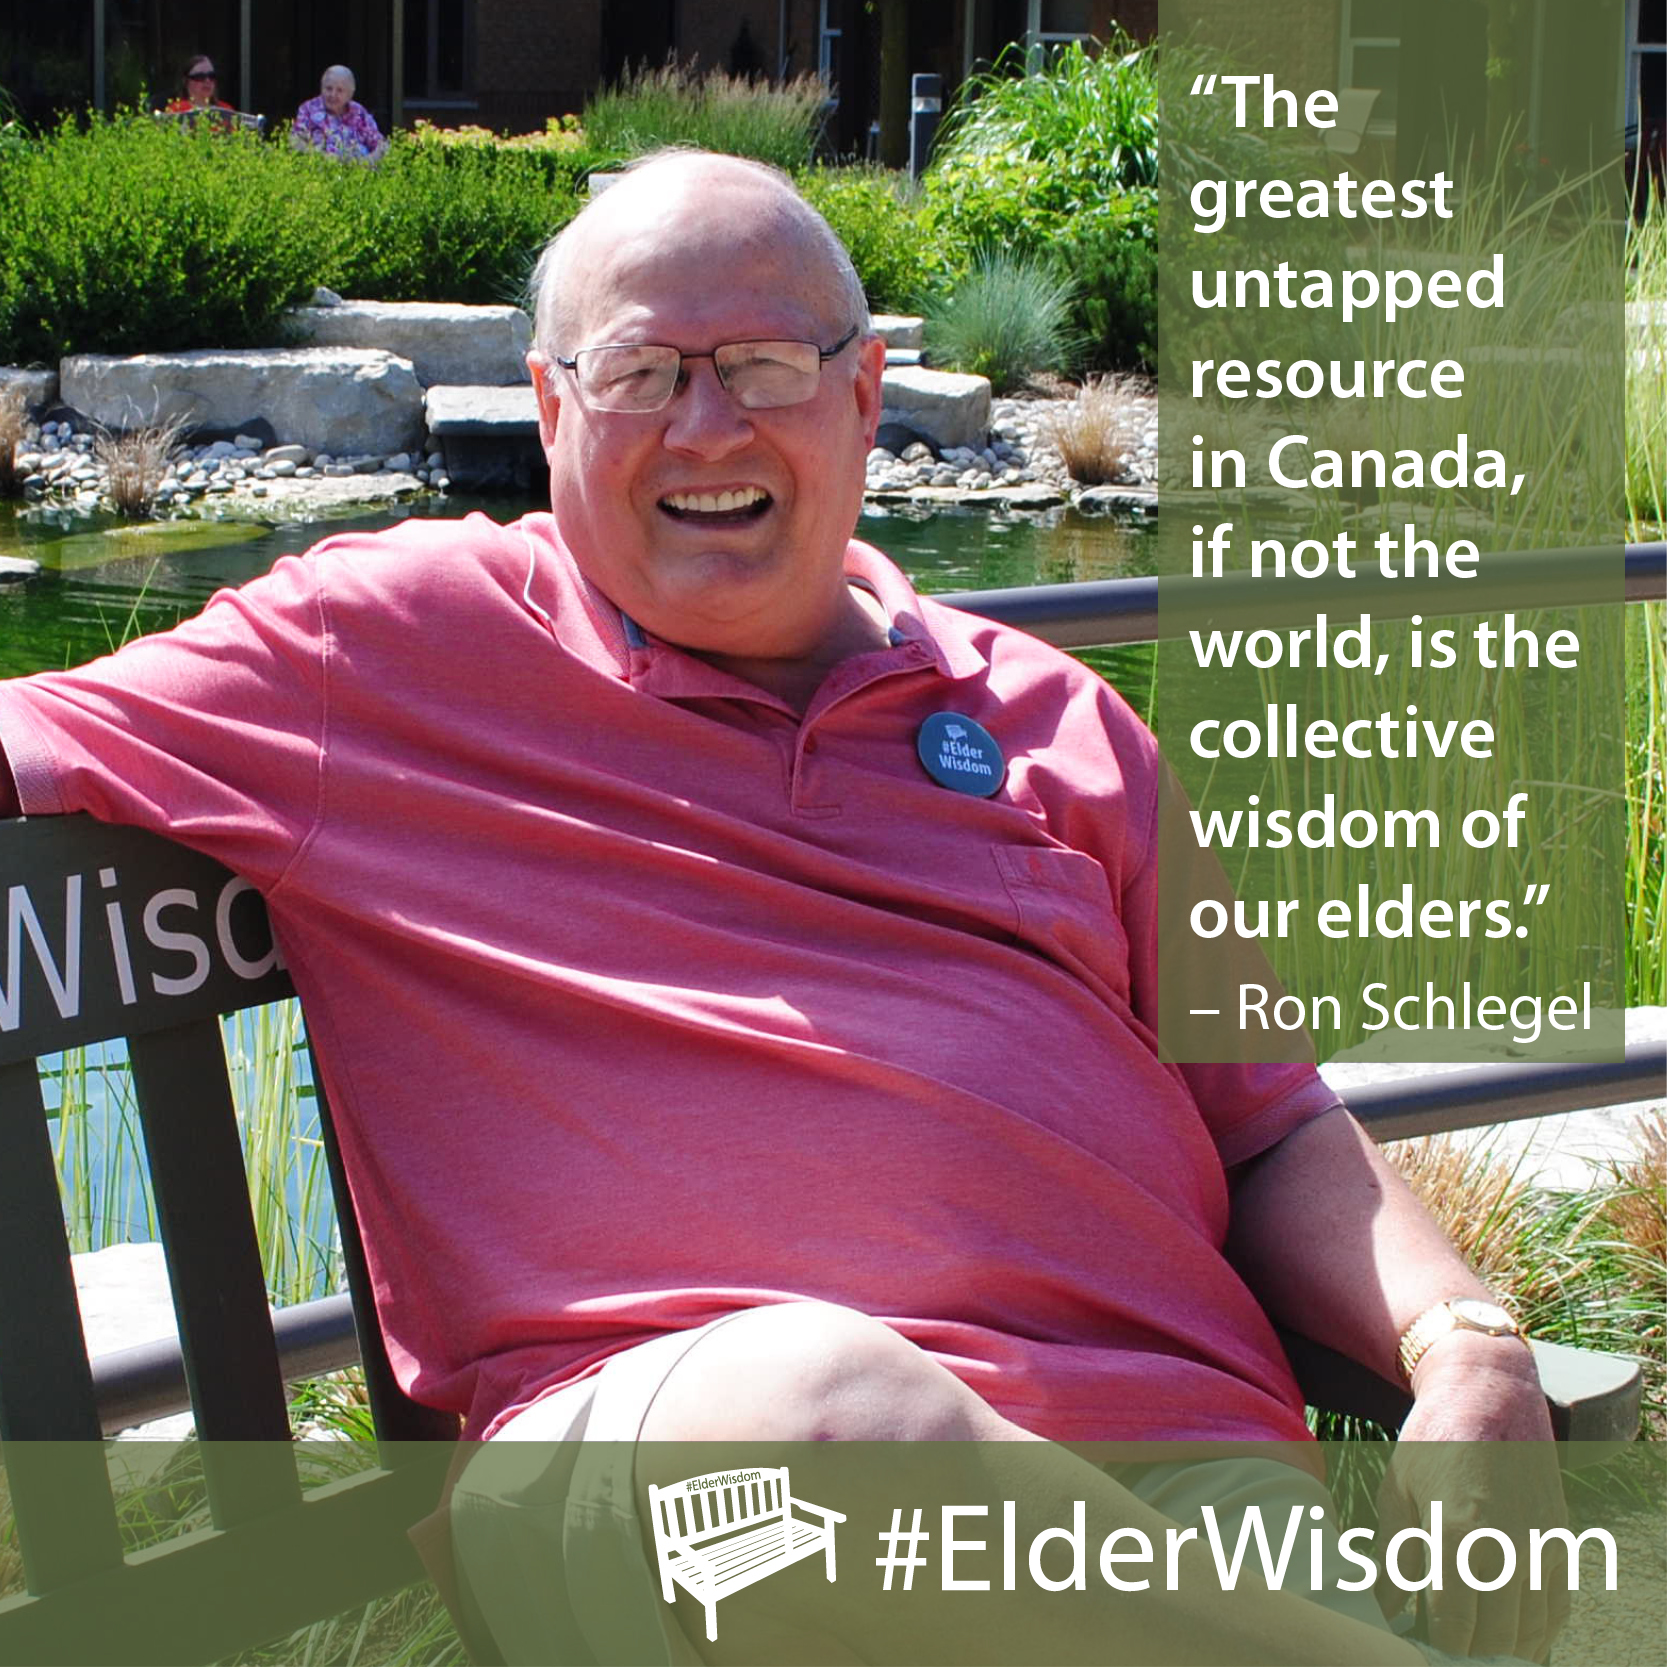 """The greatest untapped resource in Canada, if not the world, is the collective wisdom of our elders."" - Ron Schlegel"